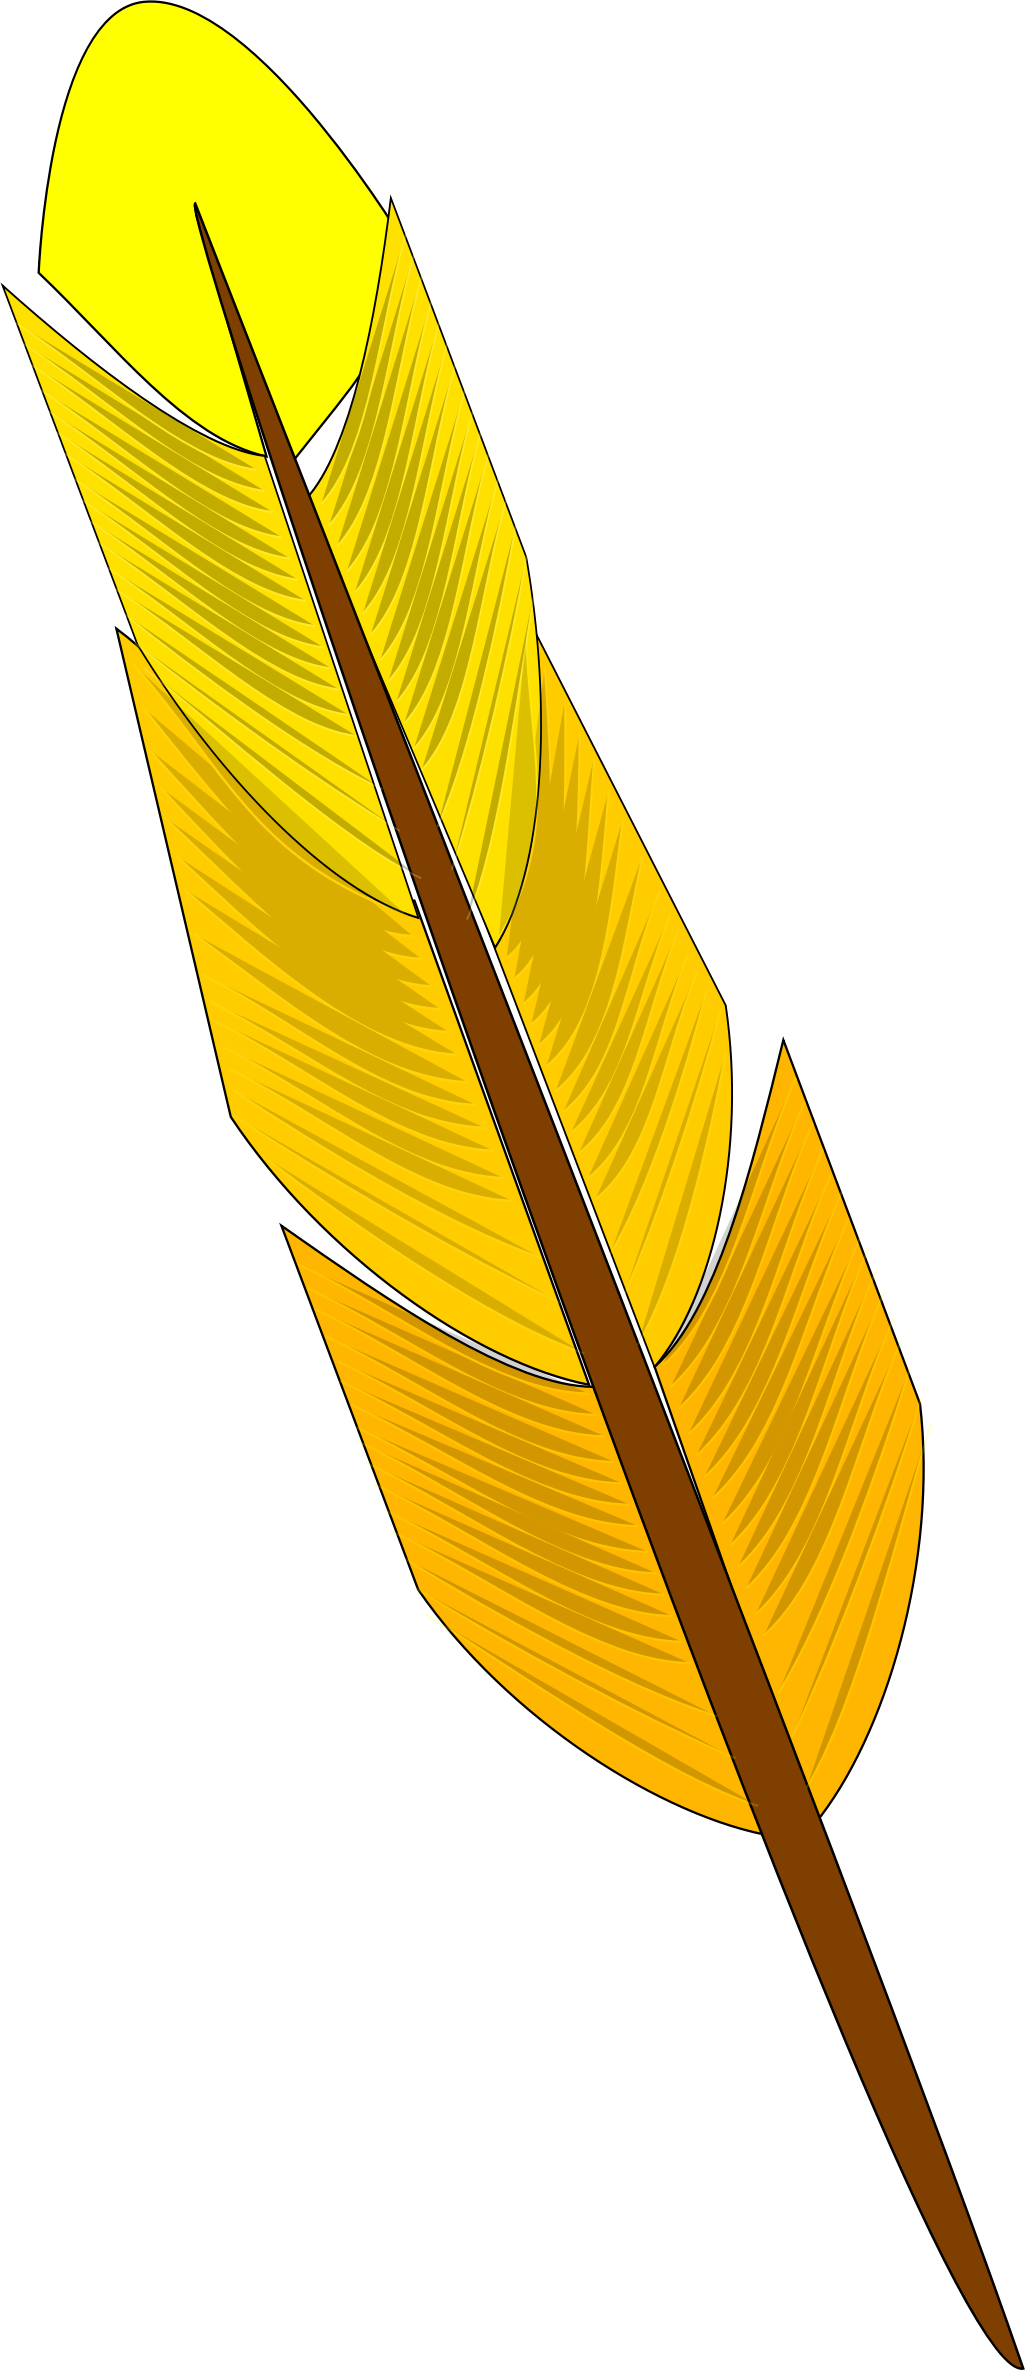 Yellow feather by Astro